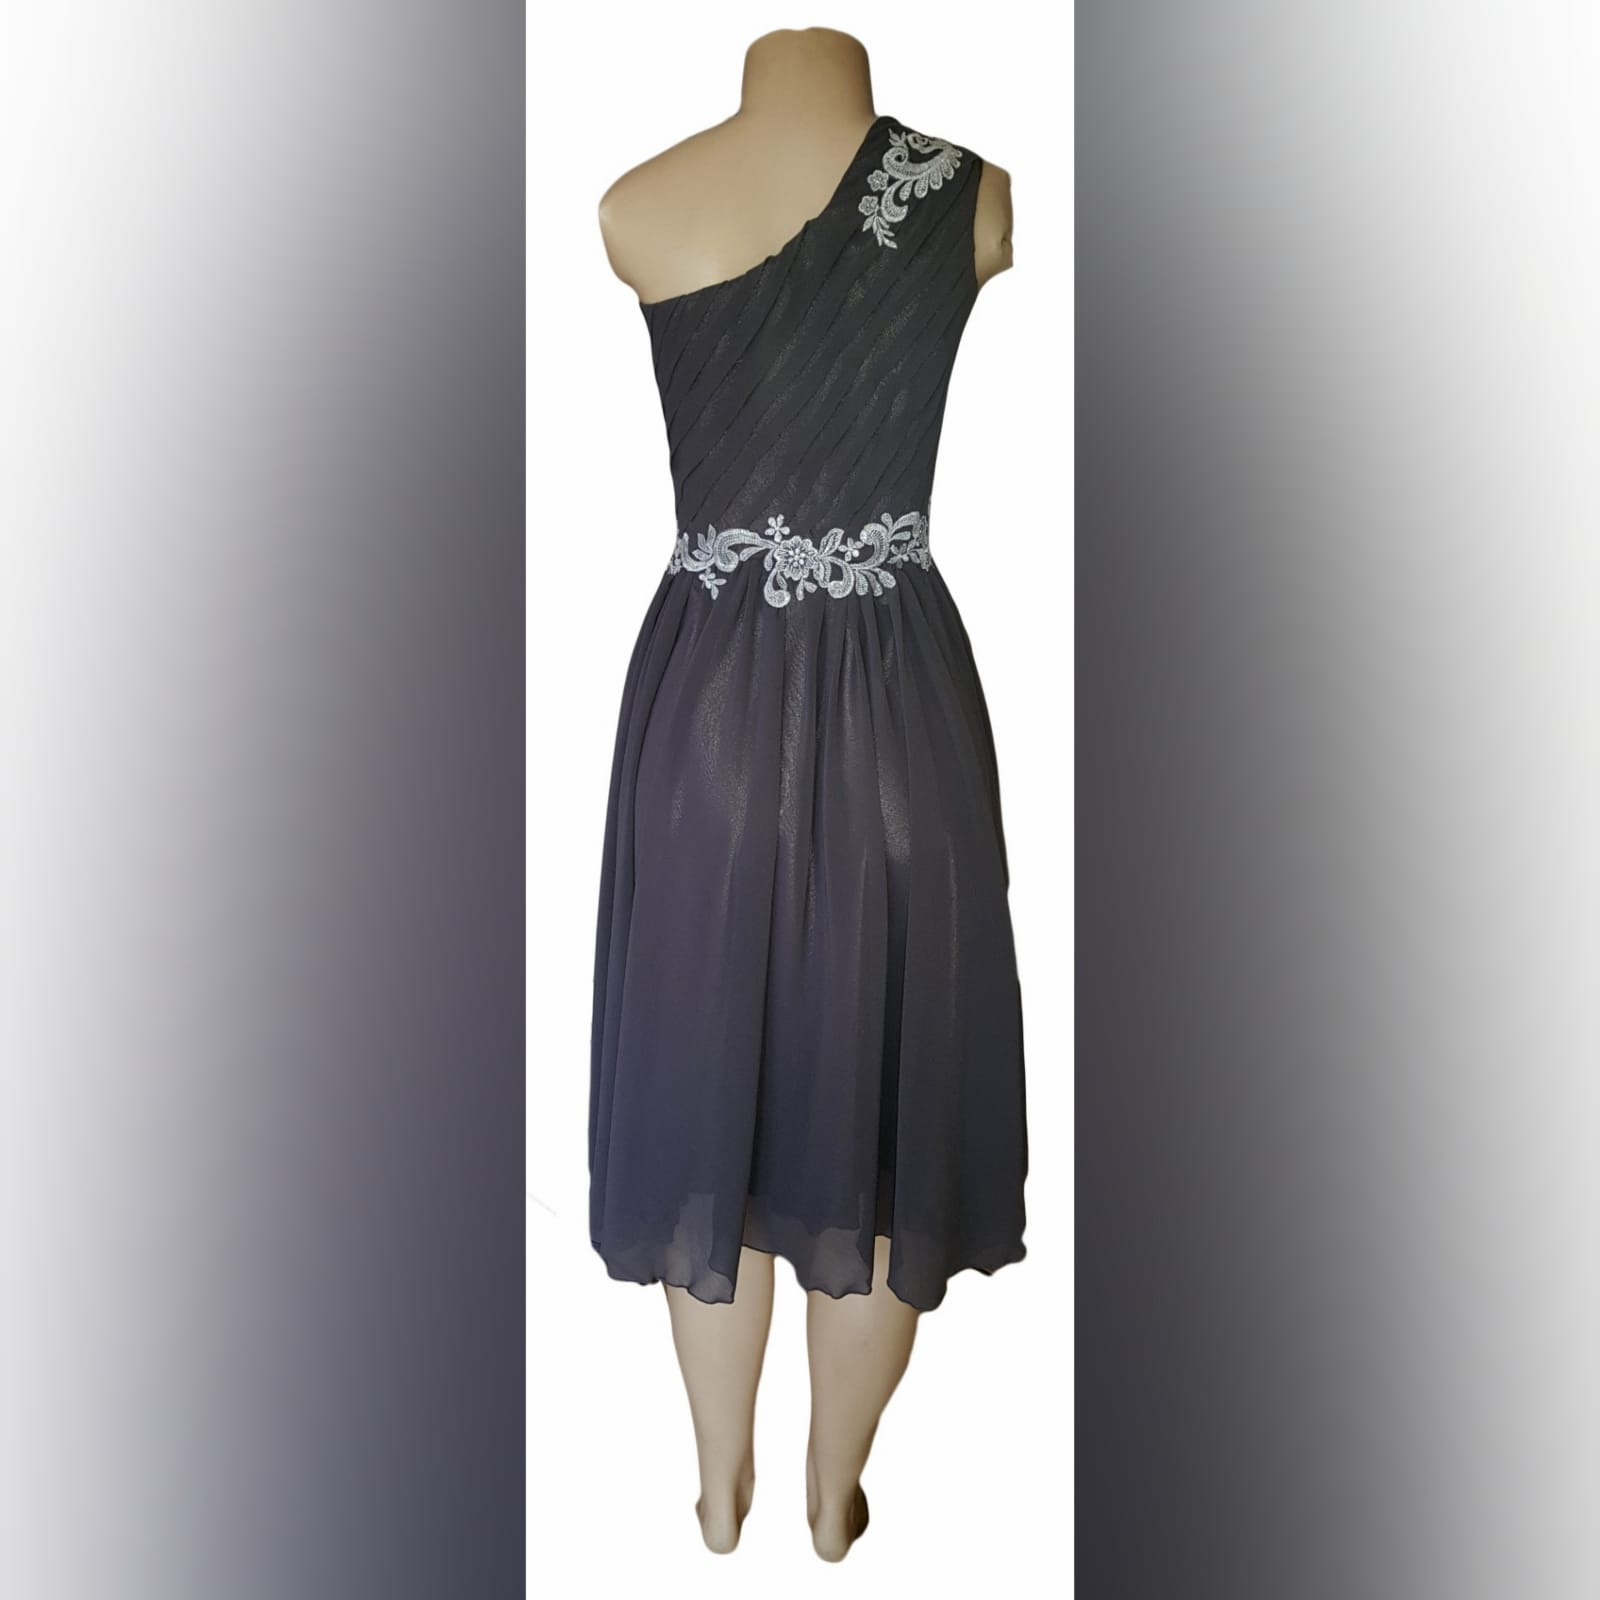 Grey & silver short maid of honour dress 3 grey & silver single shoulder knee length maid of honour dress with a ruched bodice